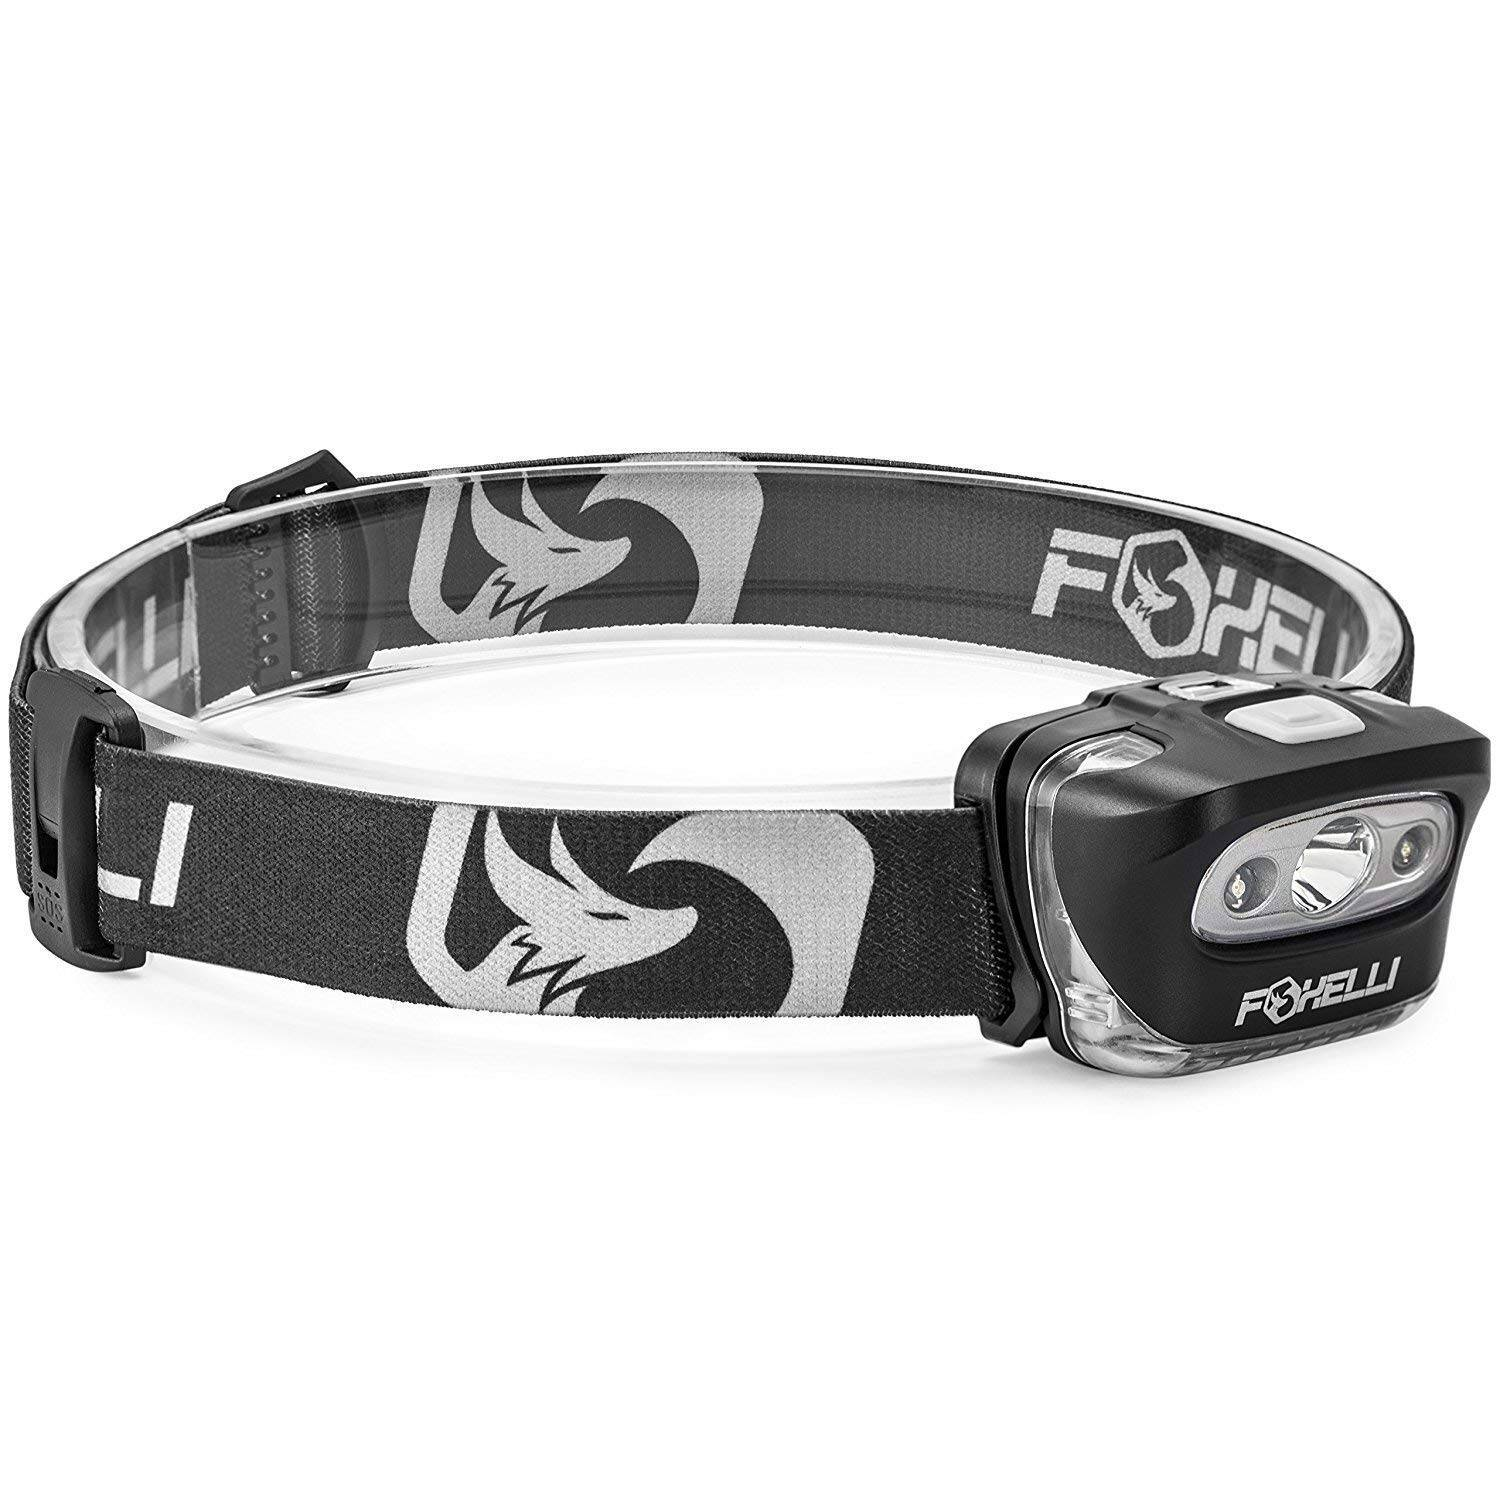 Foxelli Headlamp Flashlight - 165 Lumen